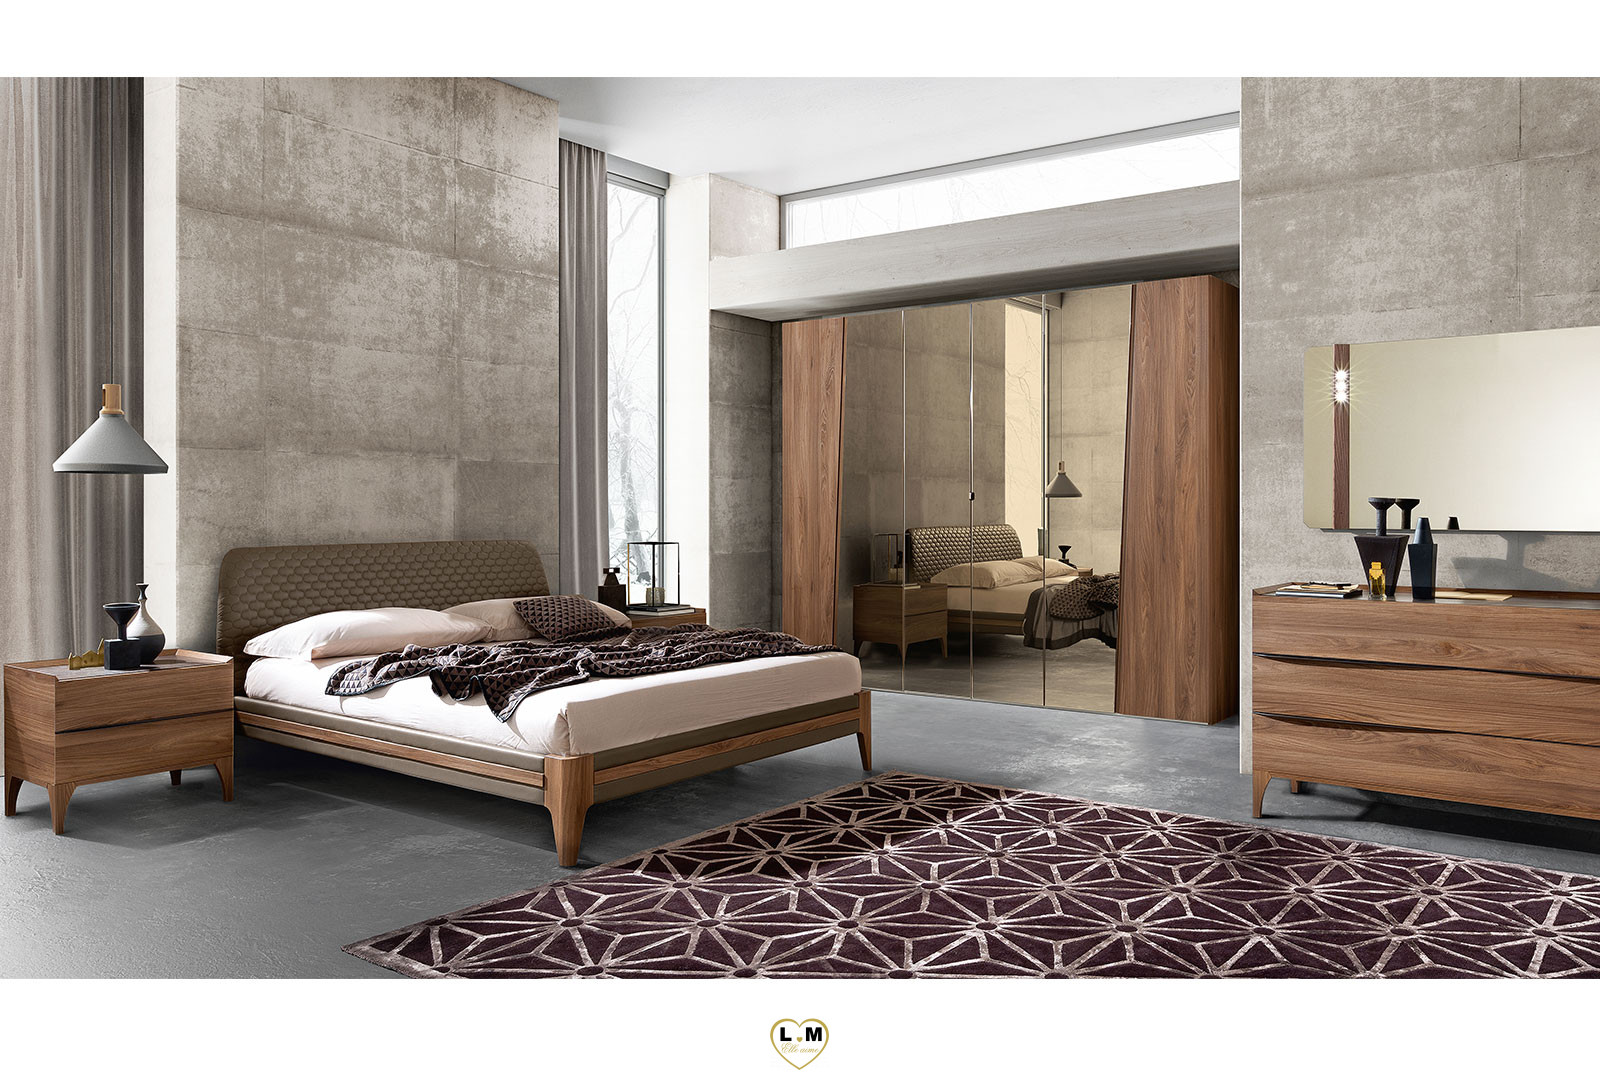 Flavius bois orme tabac chambre a coucher tendance le - Catalogue chambre a coucher en bois ...